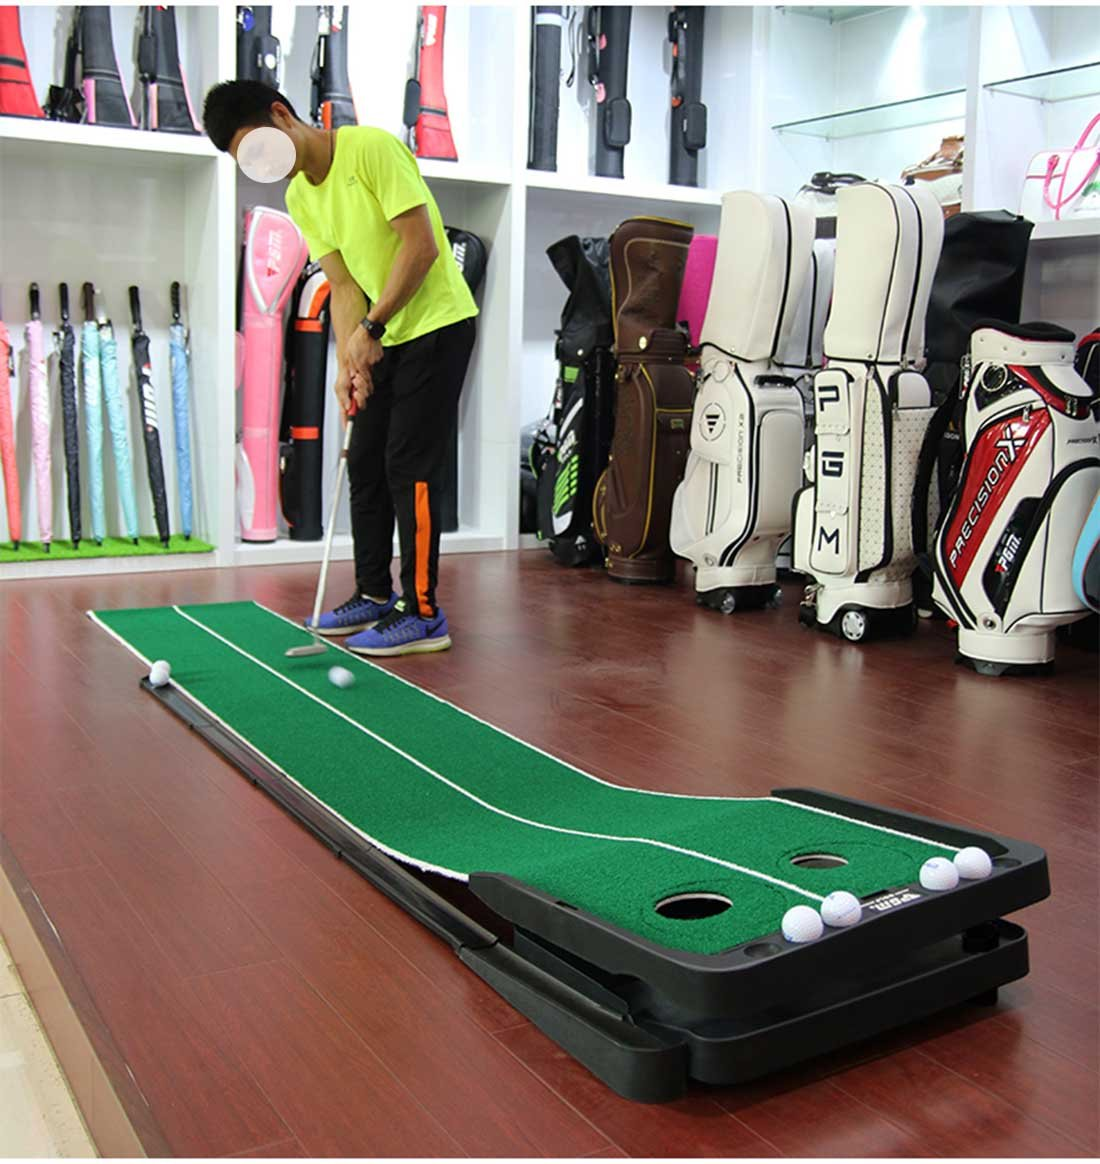 Novelty Golf Putting Trainer Indoor Golf Putting Green System----Auto Return,Extra Wide than Others,20inch Width by PGM (Image #6)